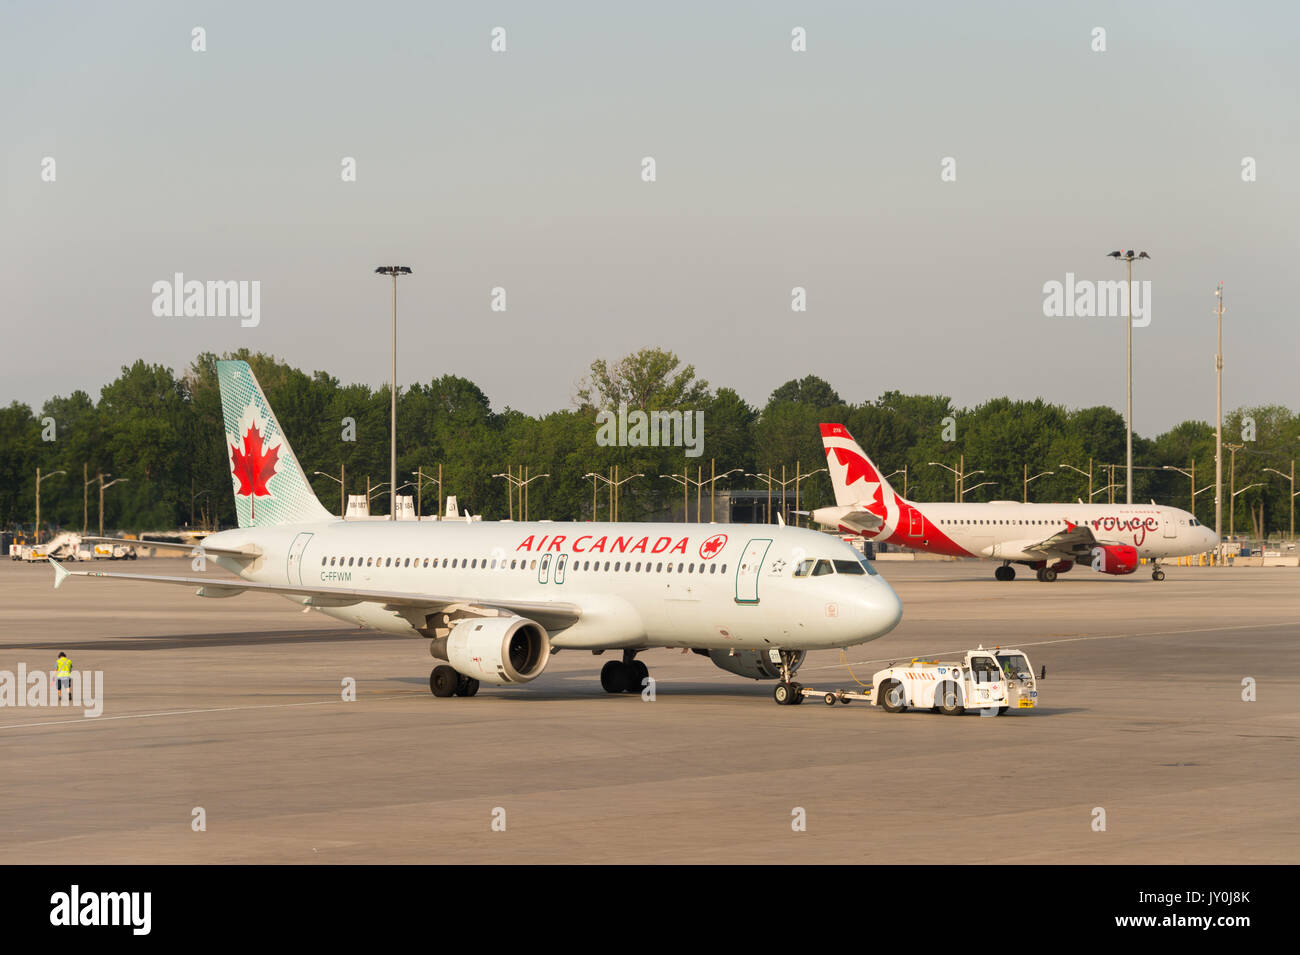 Air Canada commercial planes on the tarmac of Montreal Pierre Elliott Trudeau International Airport - Stock Image